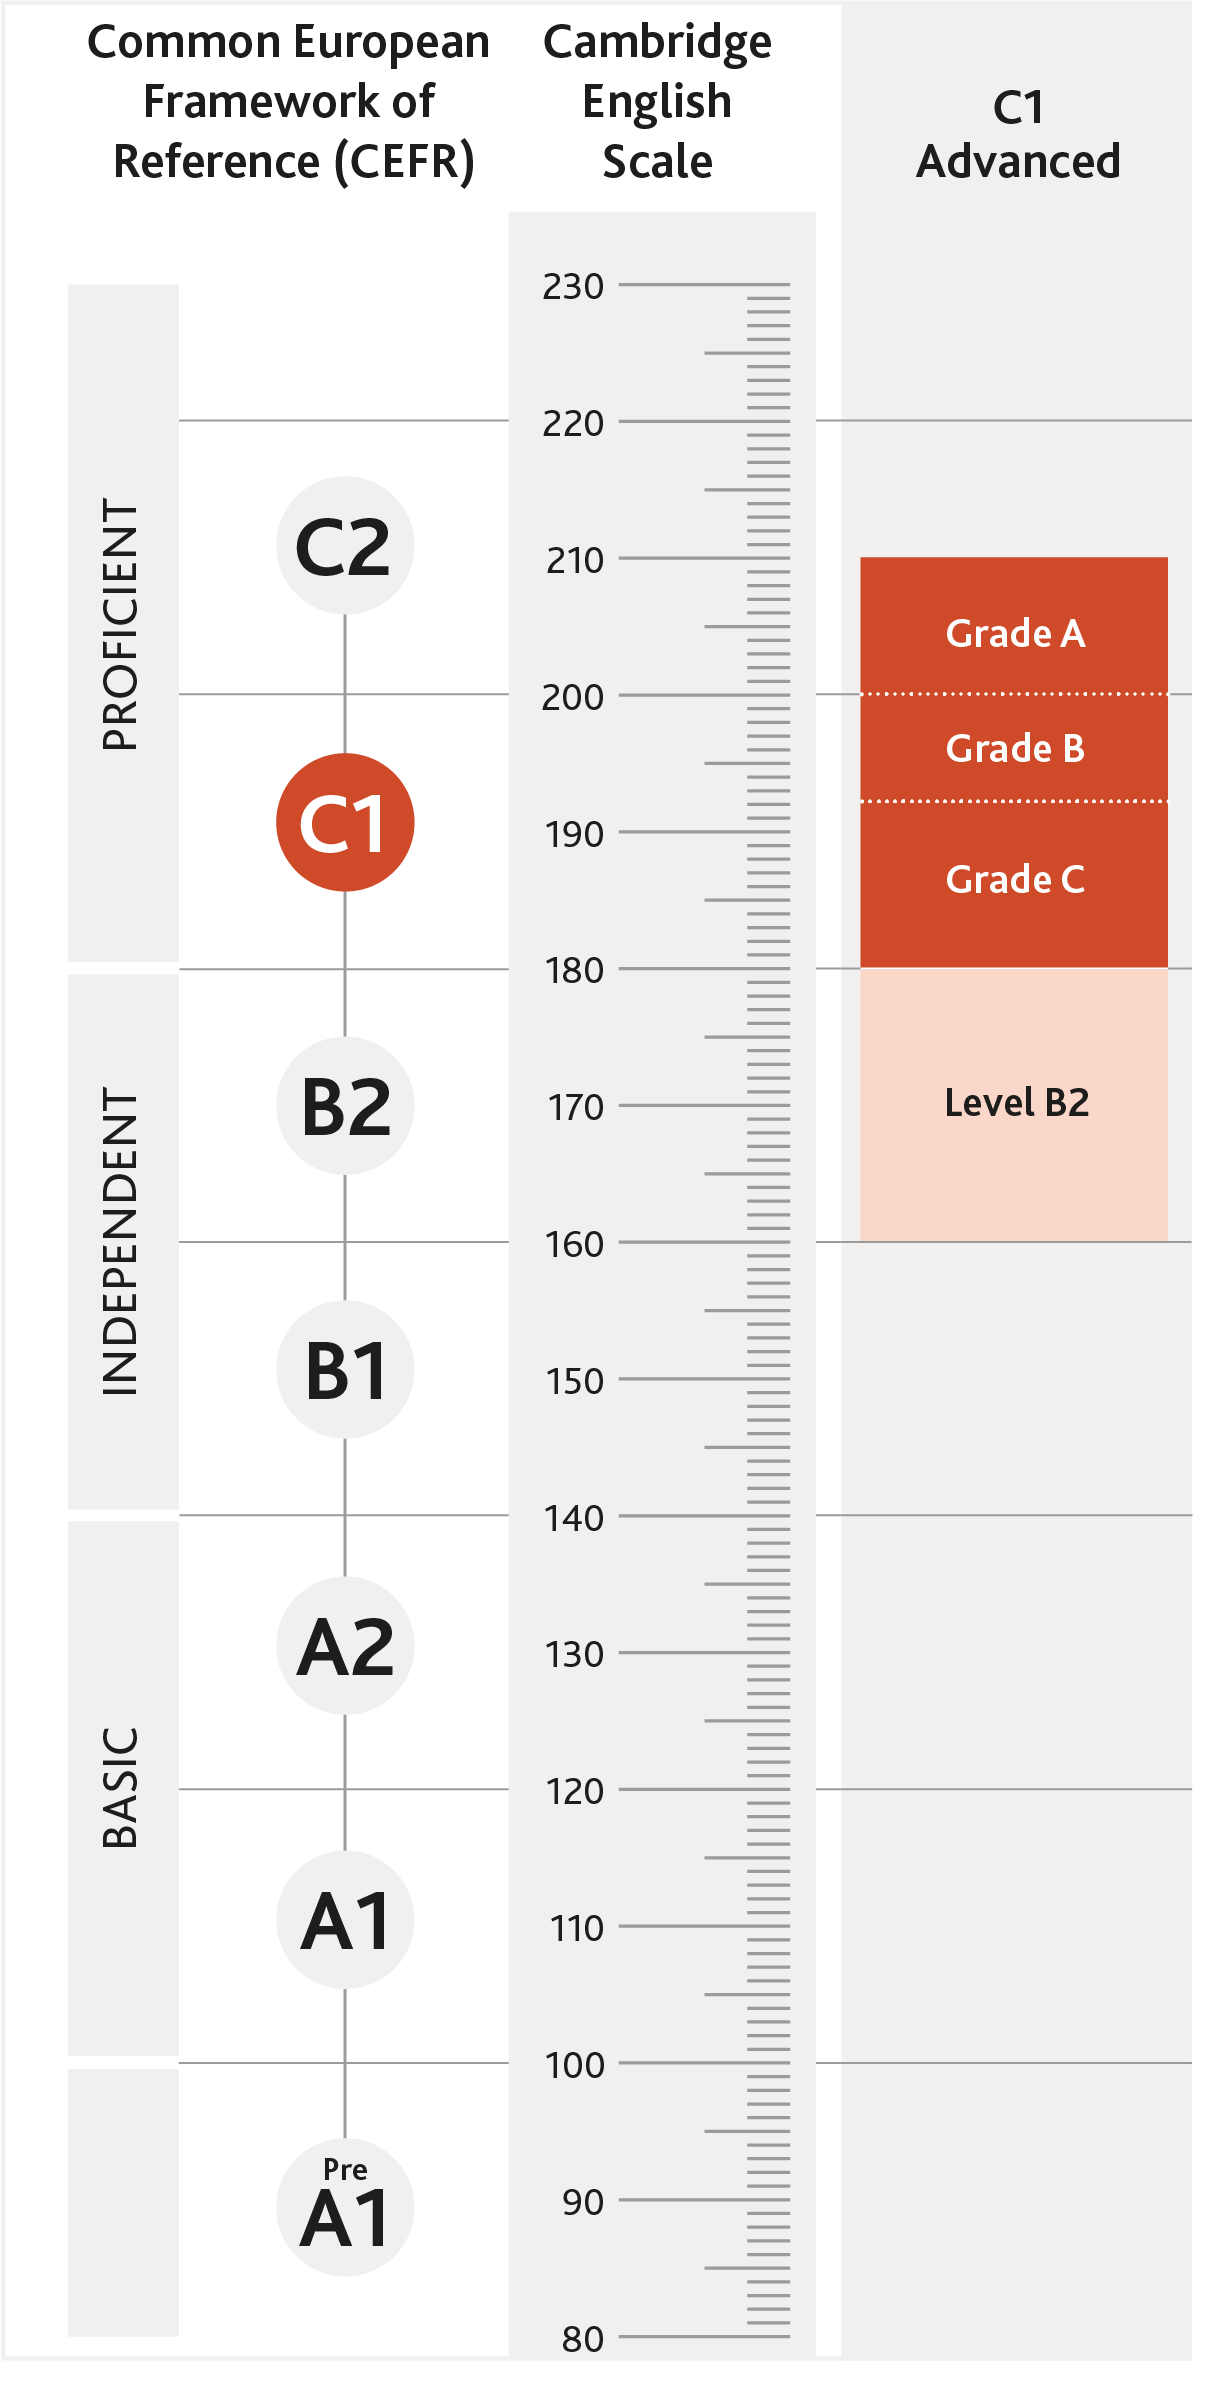 Diagram of where Cambridge English: Advanced is aligned on the CEFR and Cambridge English Scale